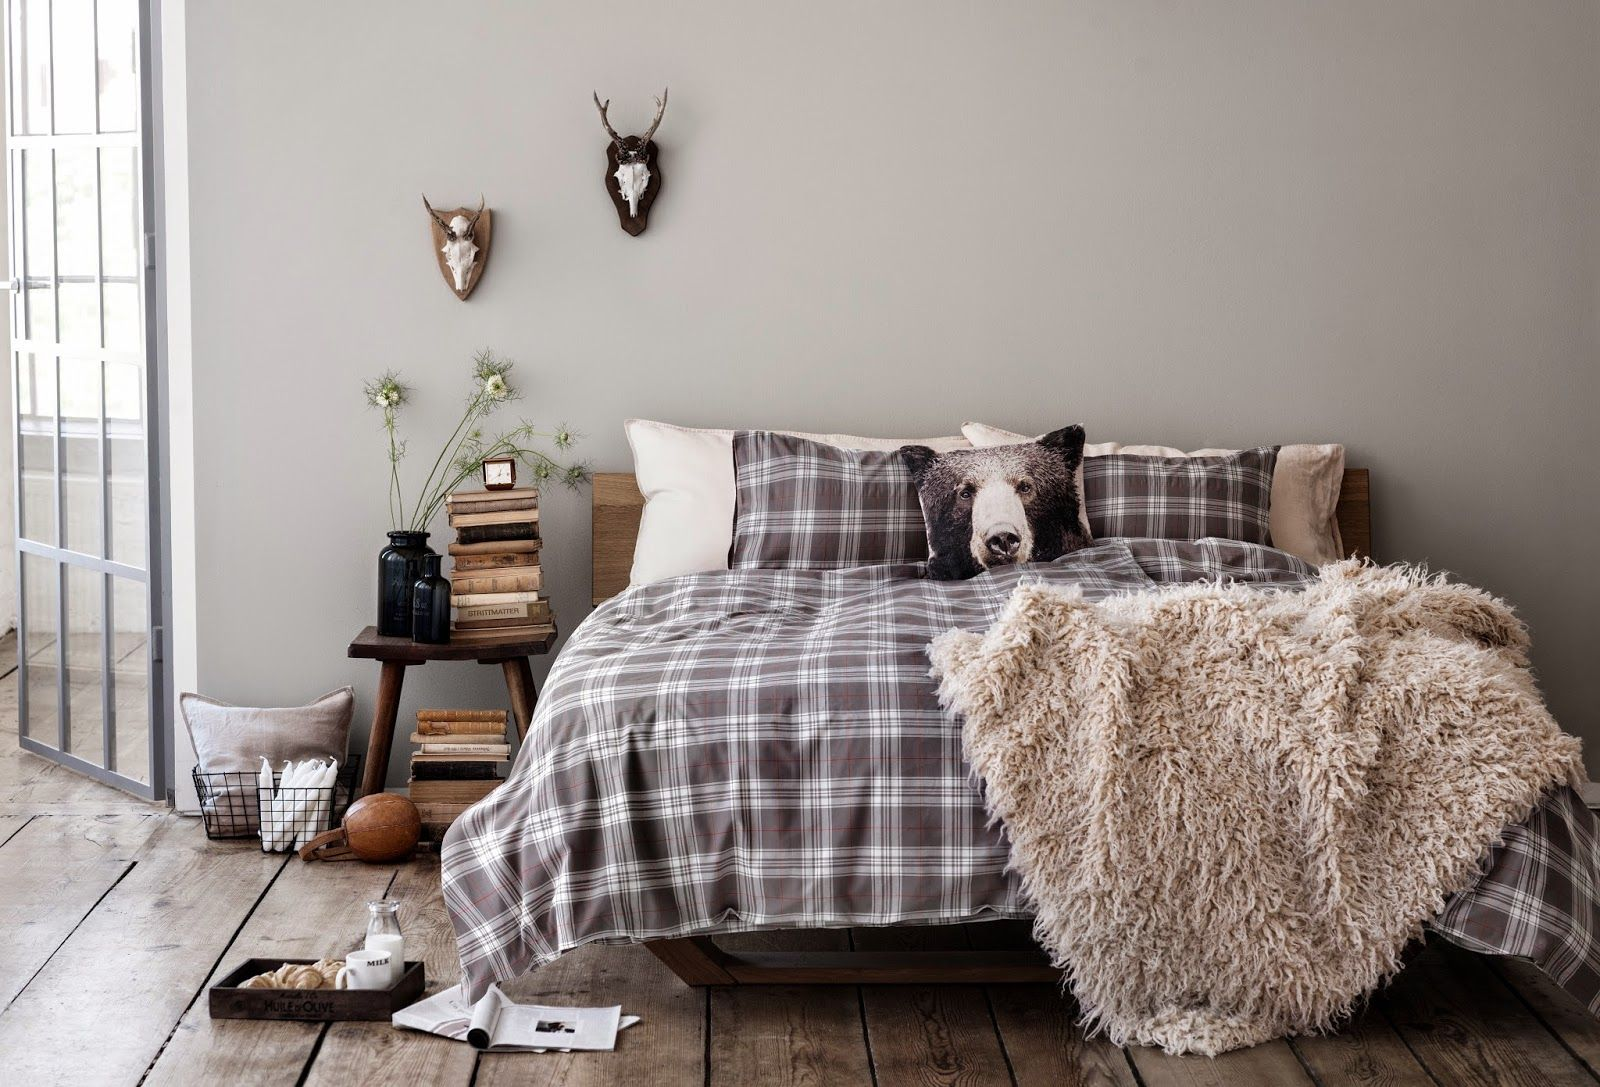 Camilla Tange Home : Emma persson lagerberg h m home simple huose in